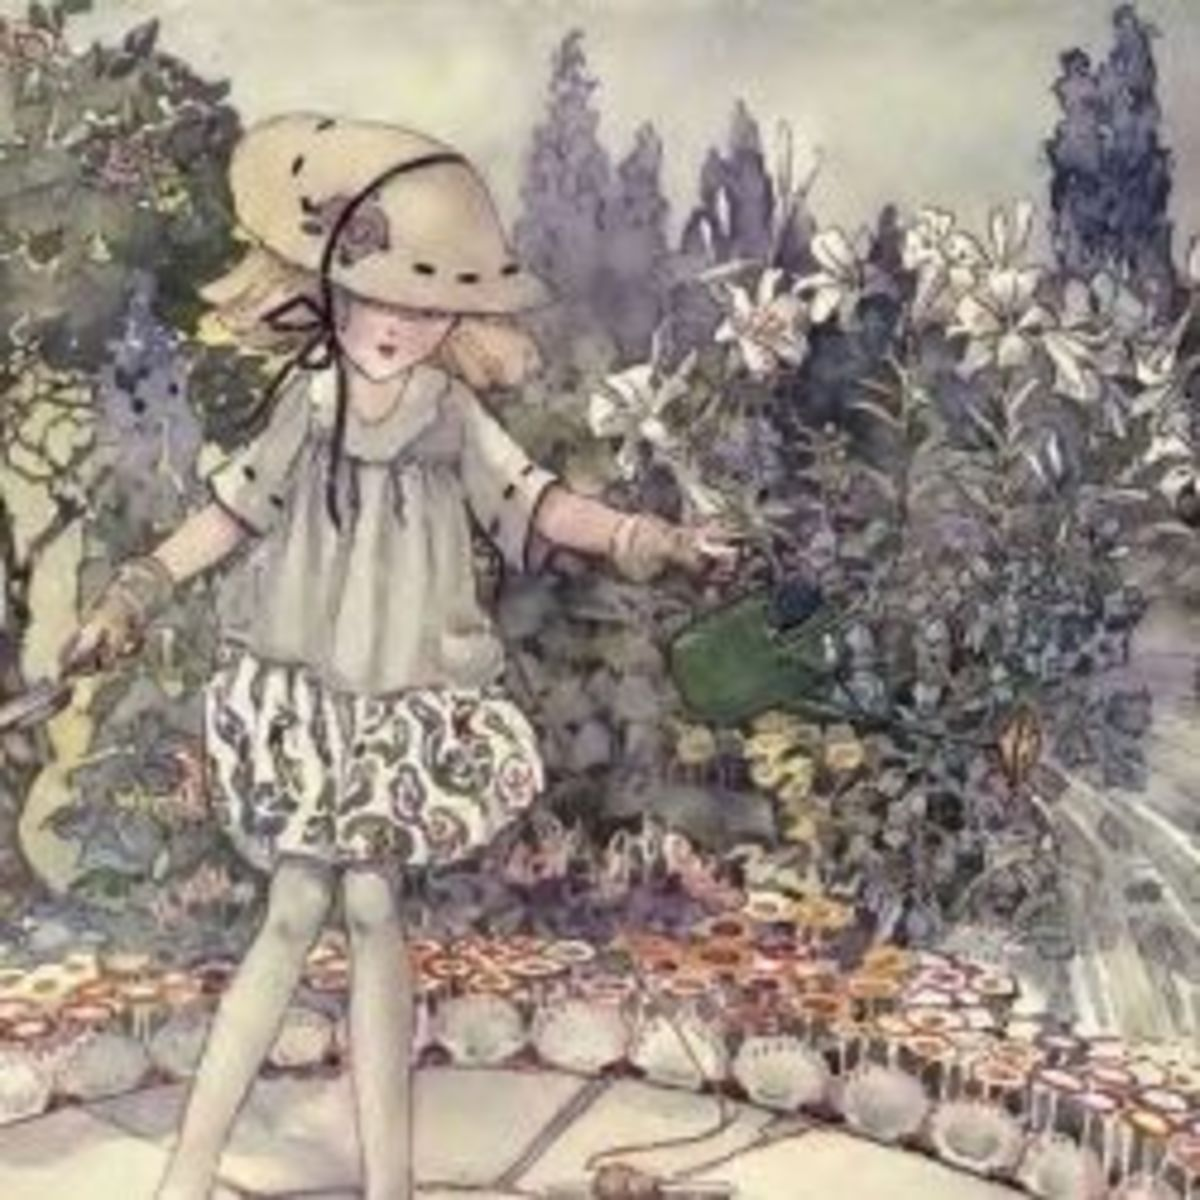 Anne Anderson, the illustrator: her personal tale, books, illustrations and fairy paintings